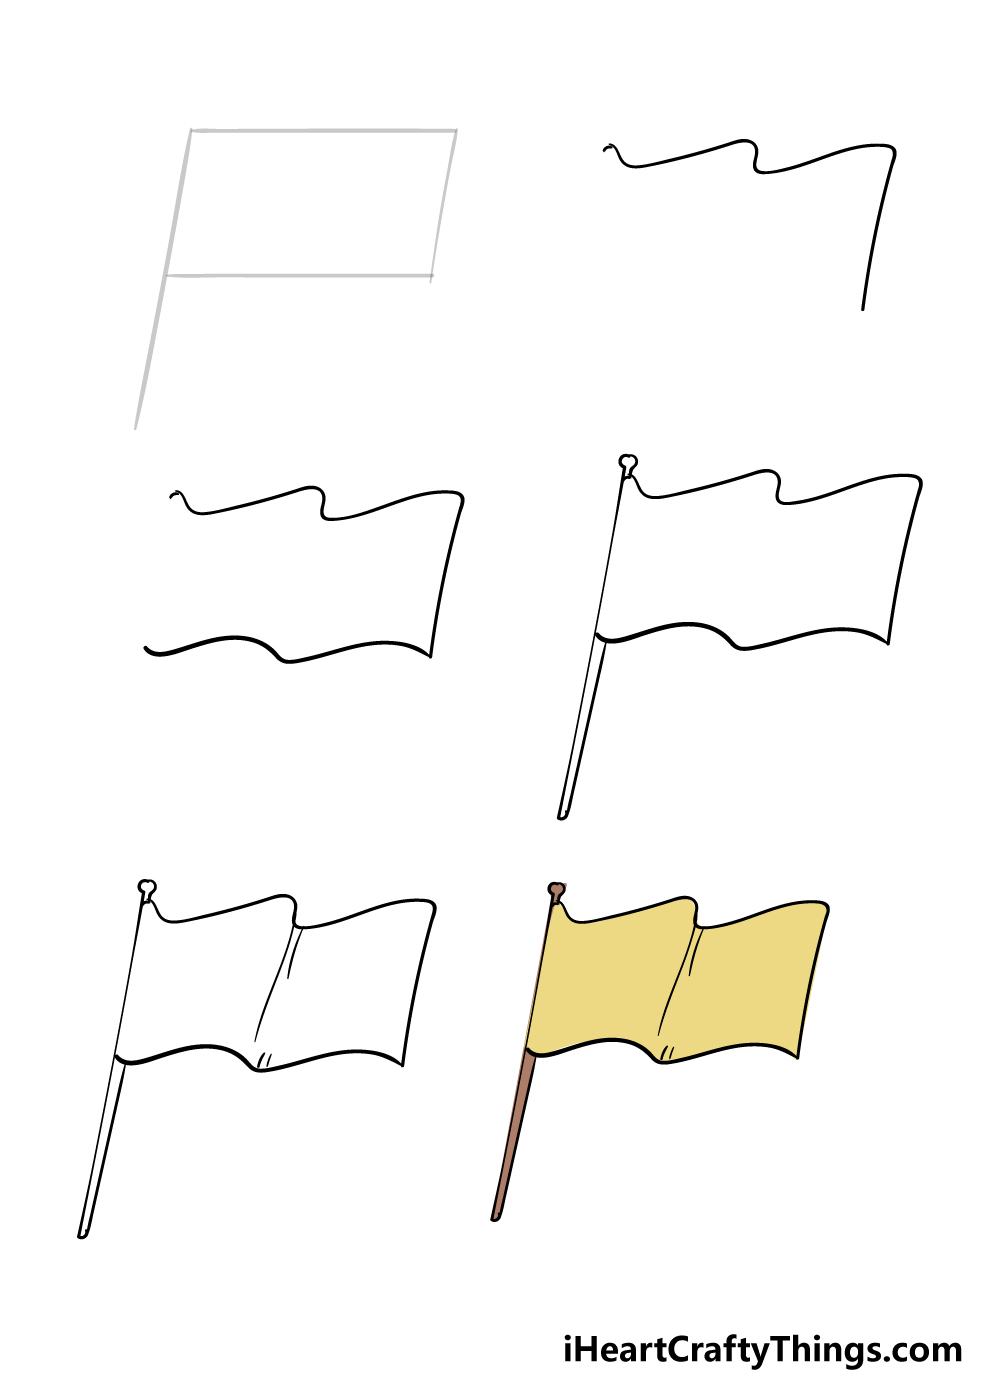 how to draw flag in 6 steps